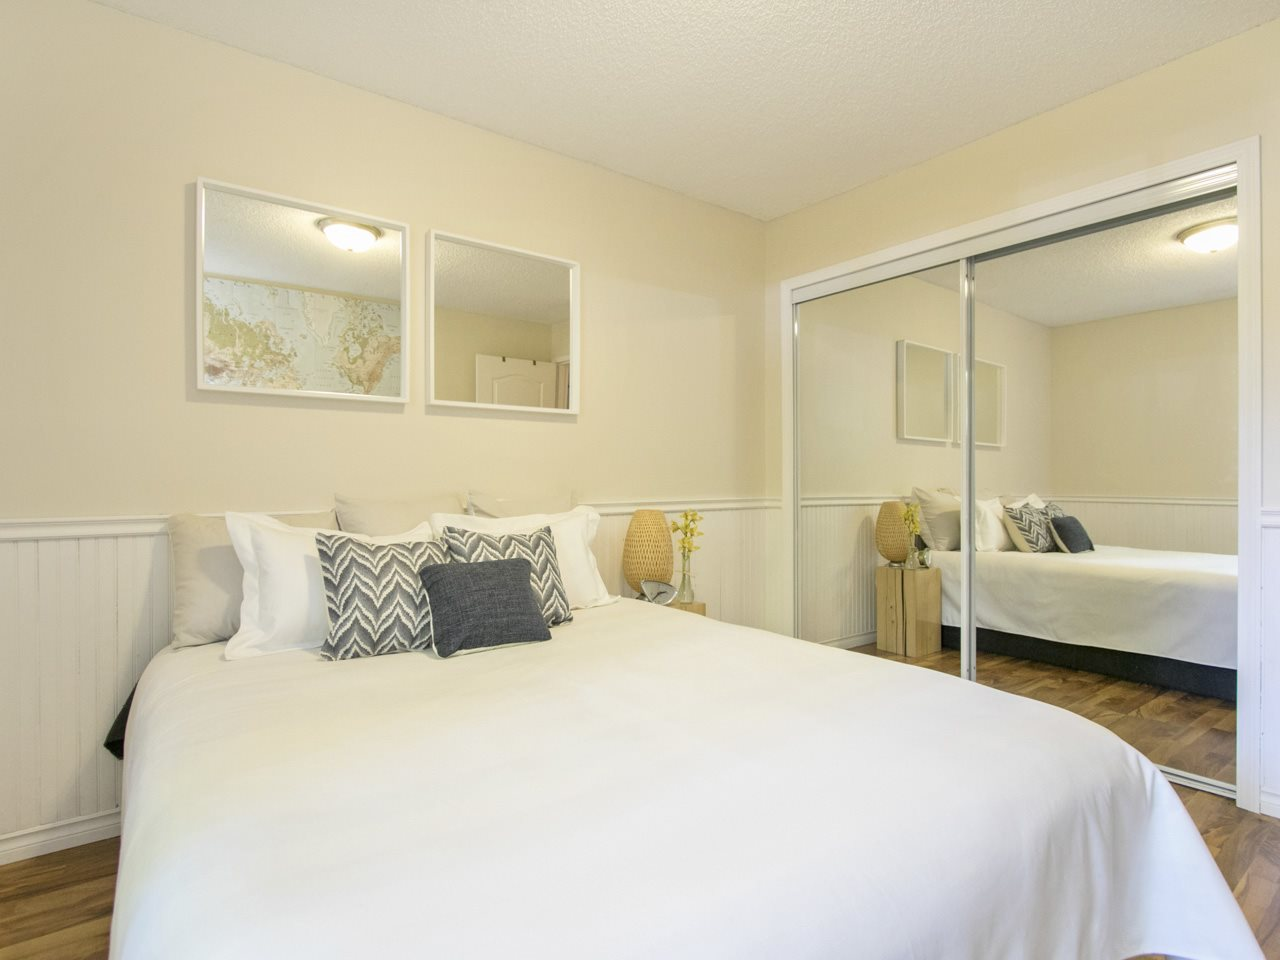 "Photo 14: 102 1549 KITCHENER Street in Vancouver: Grandview VE Condo for sale in ""DHARMA DIGS"" (Vancouver East)  : MLS® # R2163912"